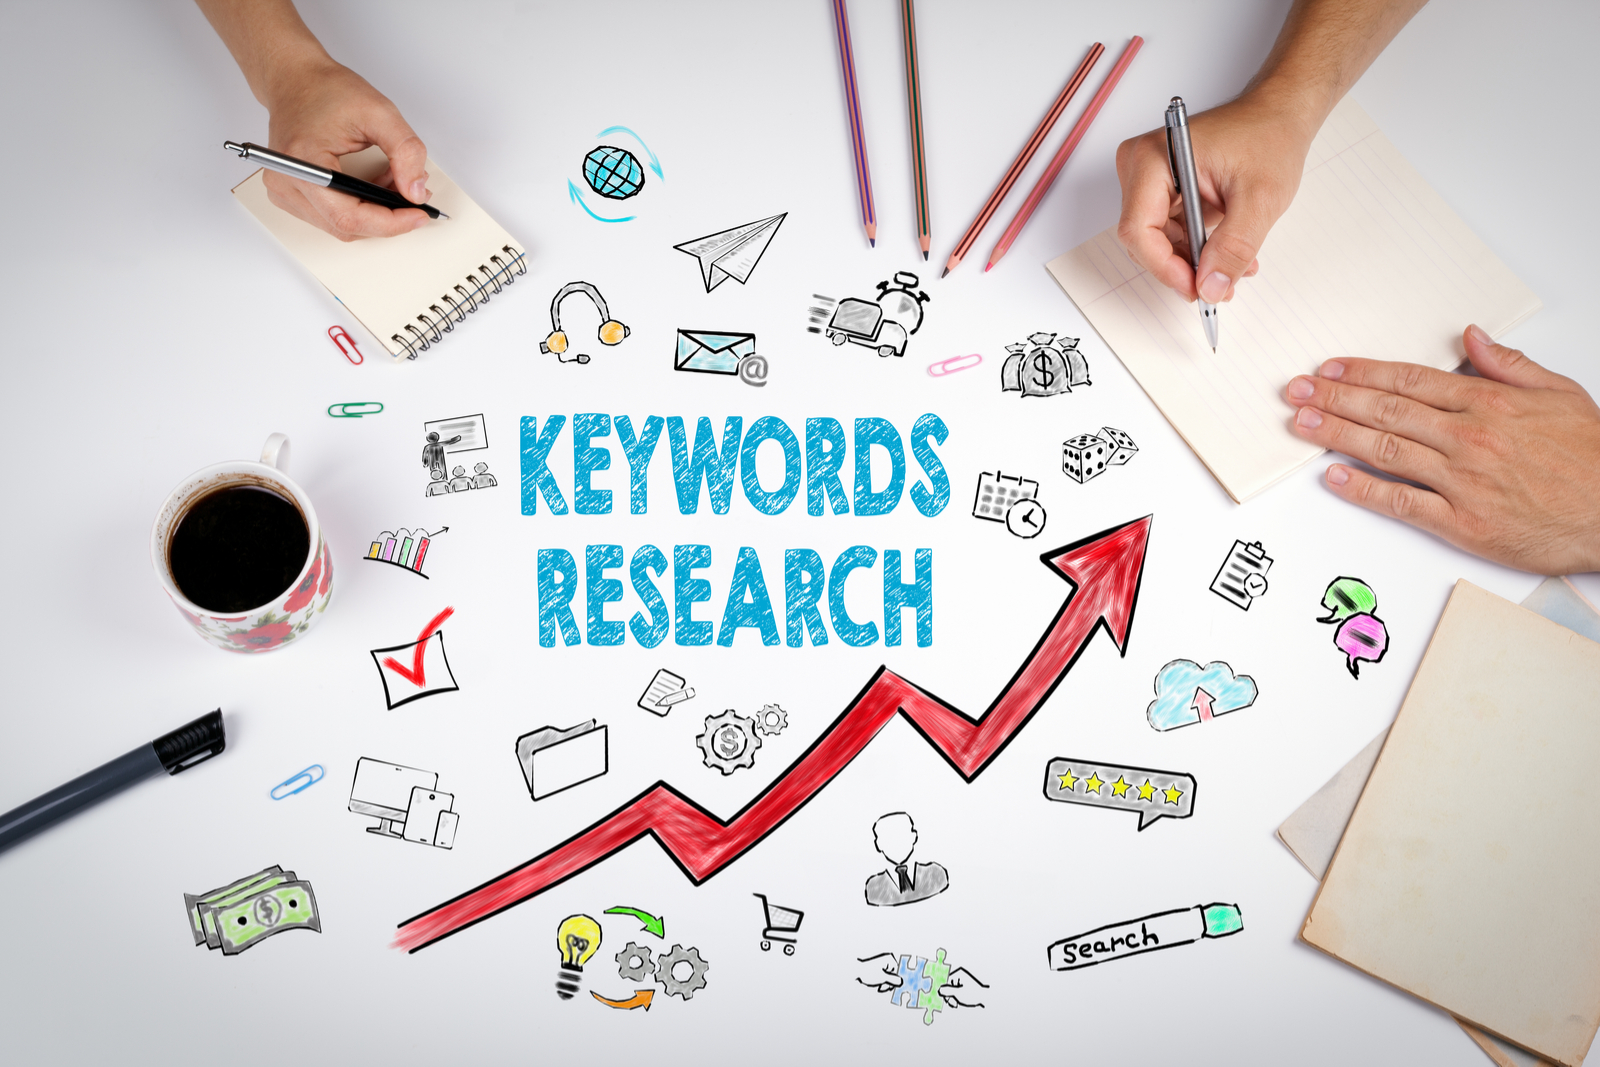 Keywords Research | Search Engine Marketing: Creating A Strategy To Hit Your Goals